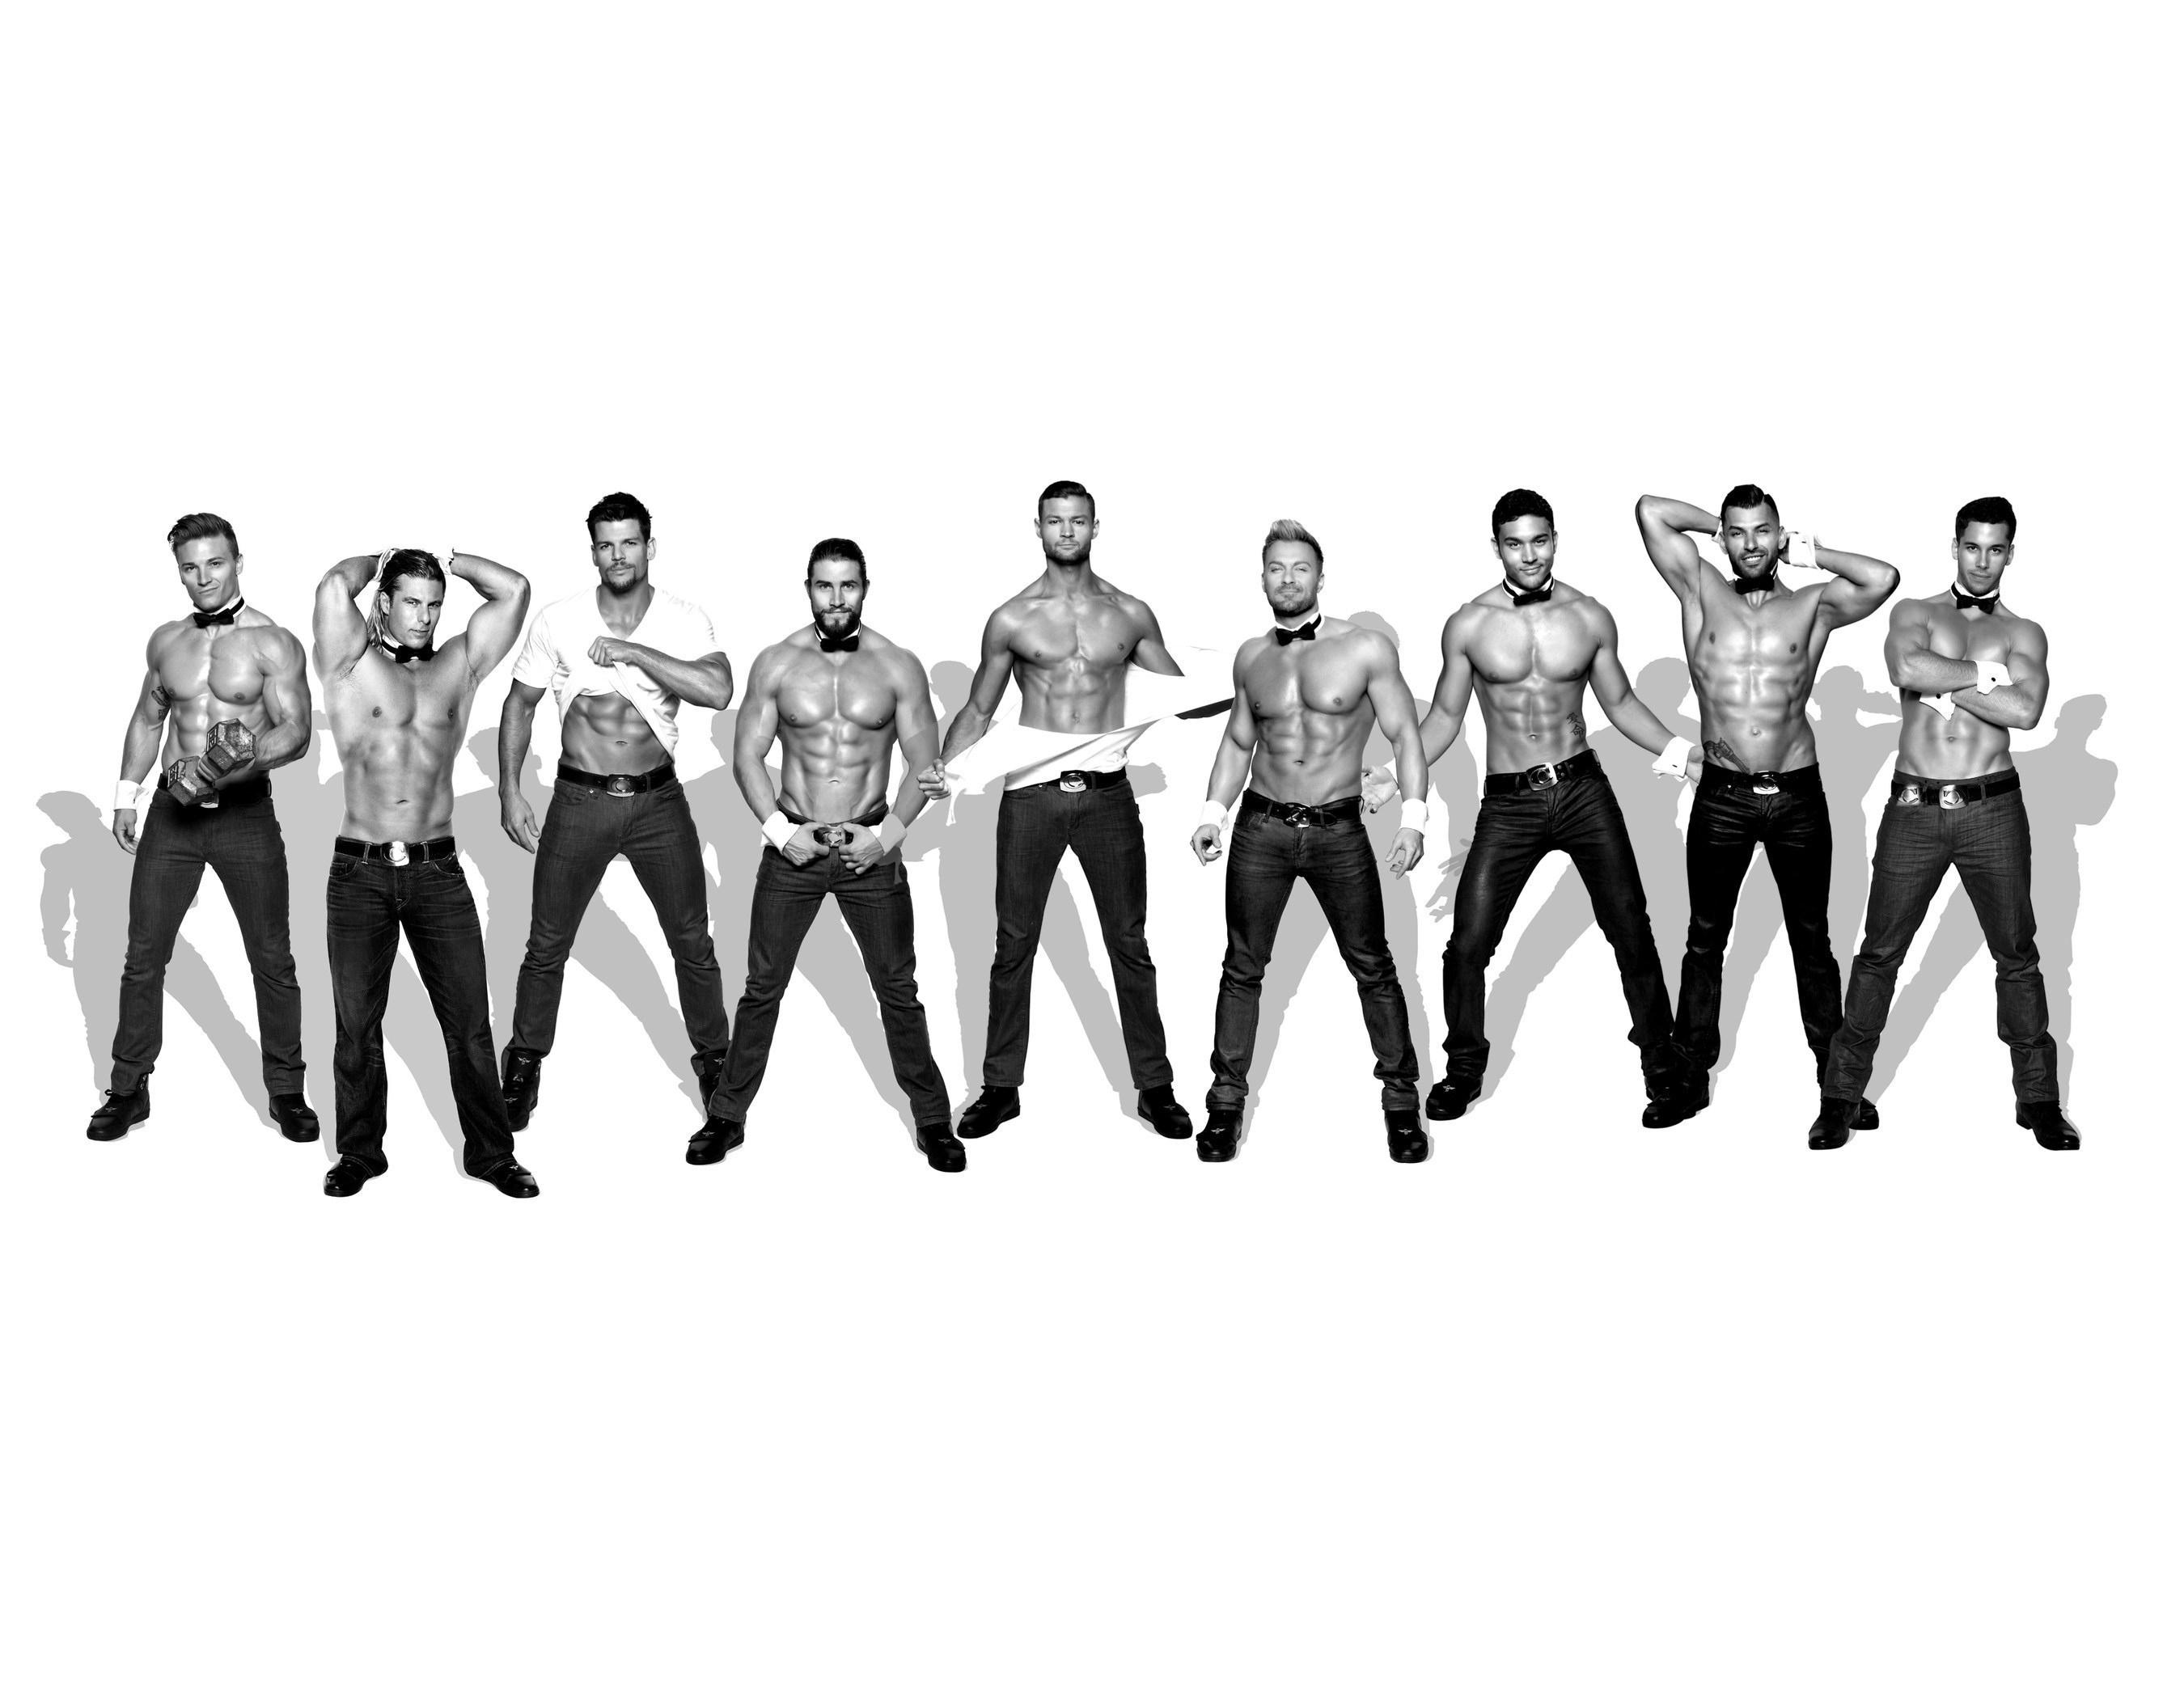 Direct From Las Vegas, Chippendales Announces the 2016 Break the Rules Tour - Turning Up the Heat on the 'Girls' Night Out'